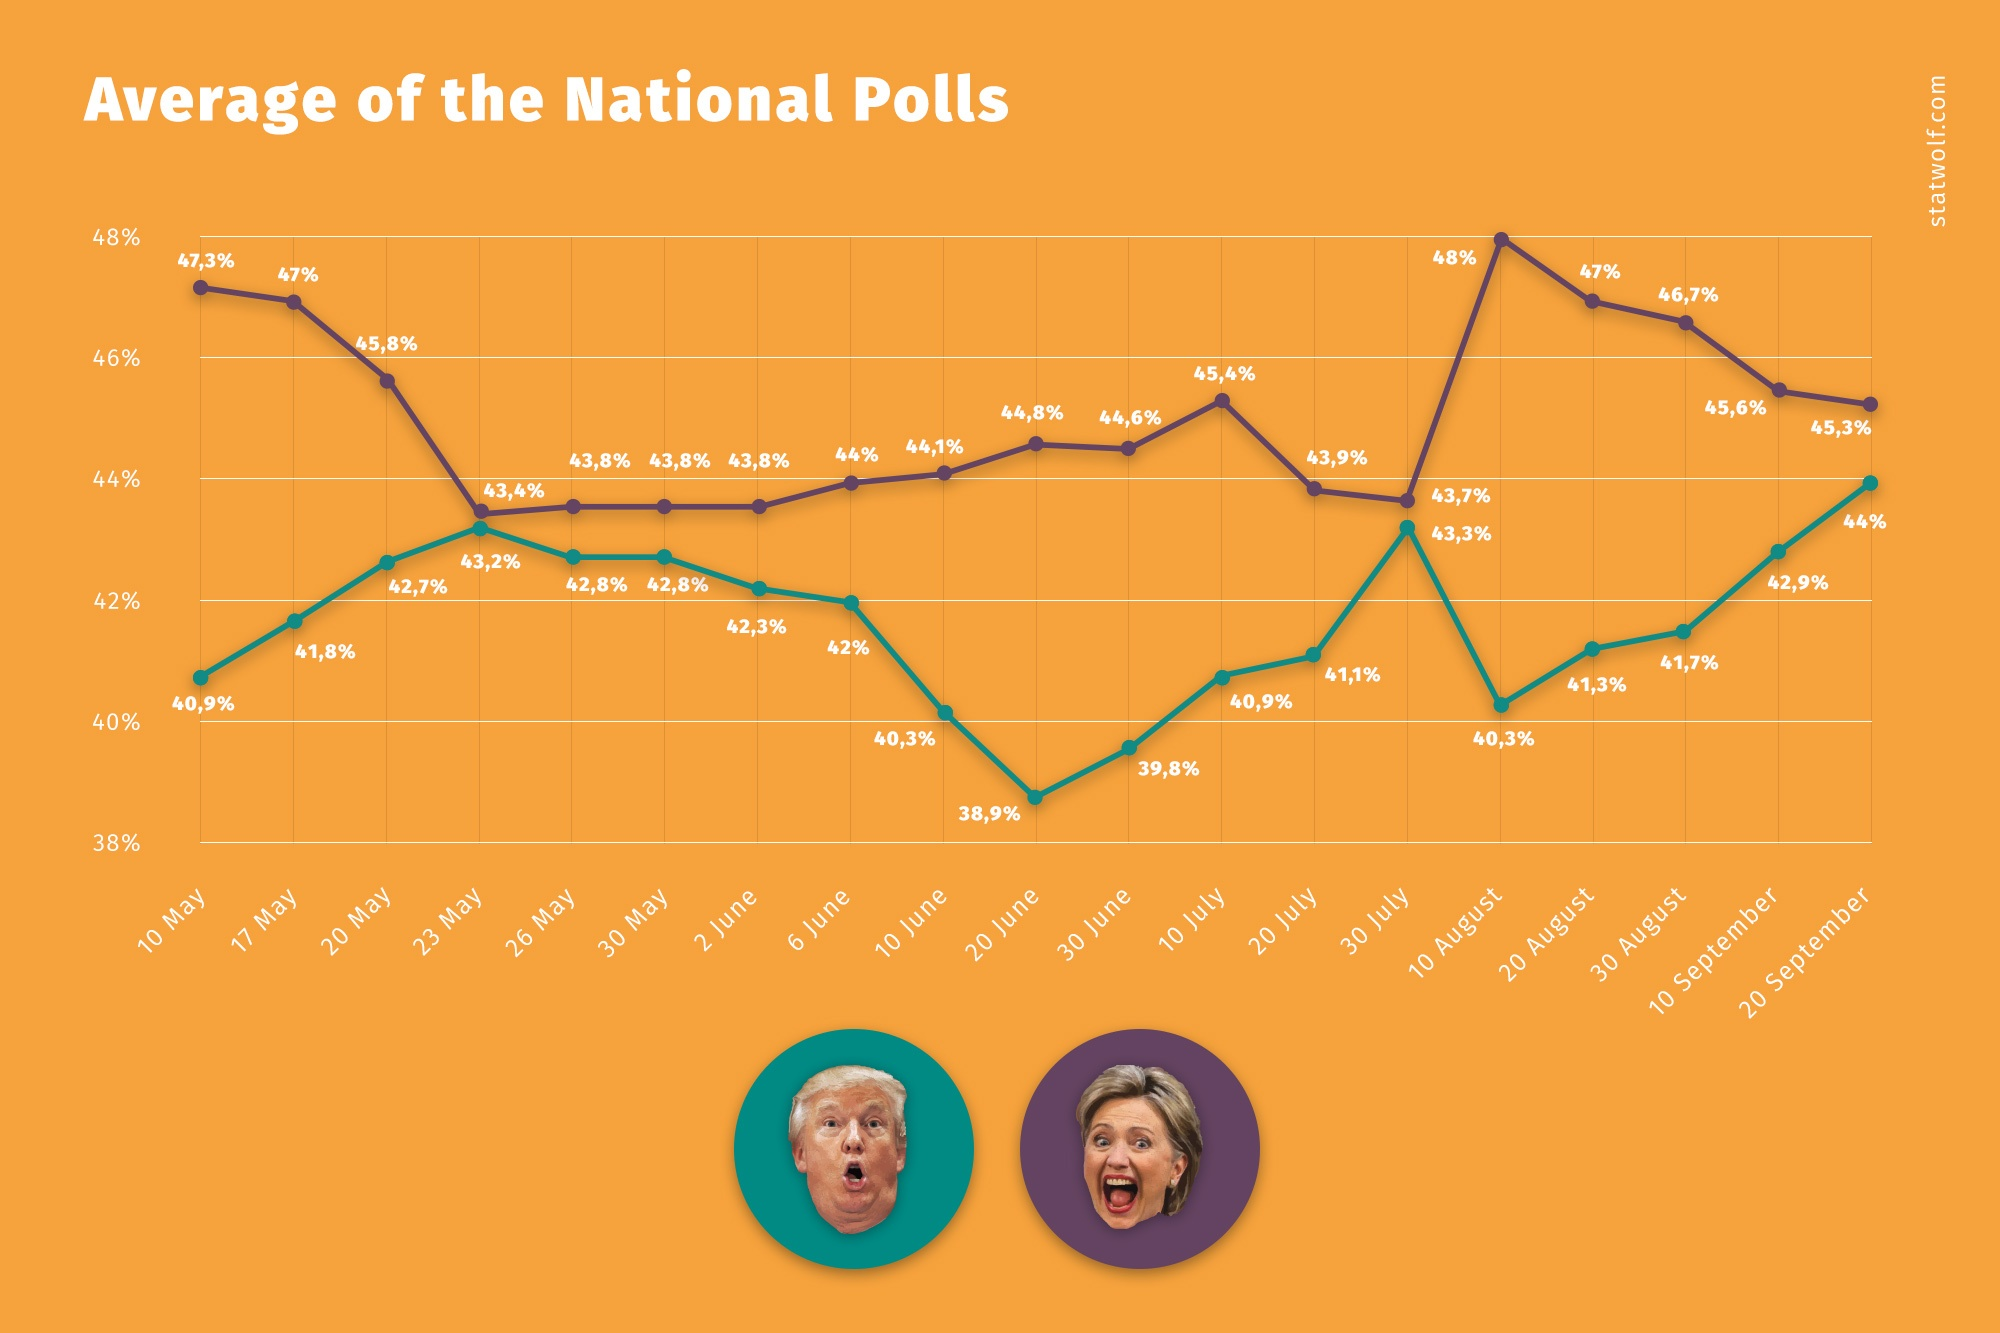 Average Of National Polls